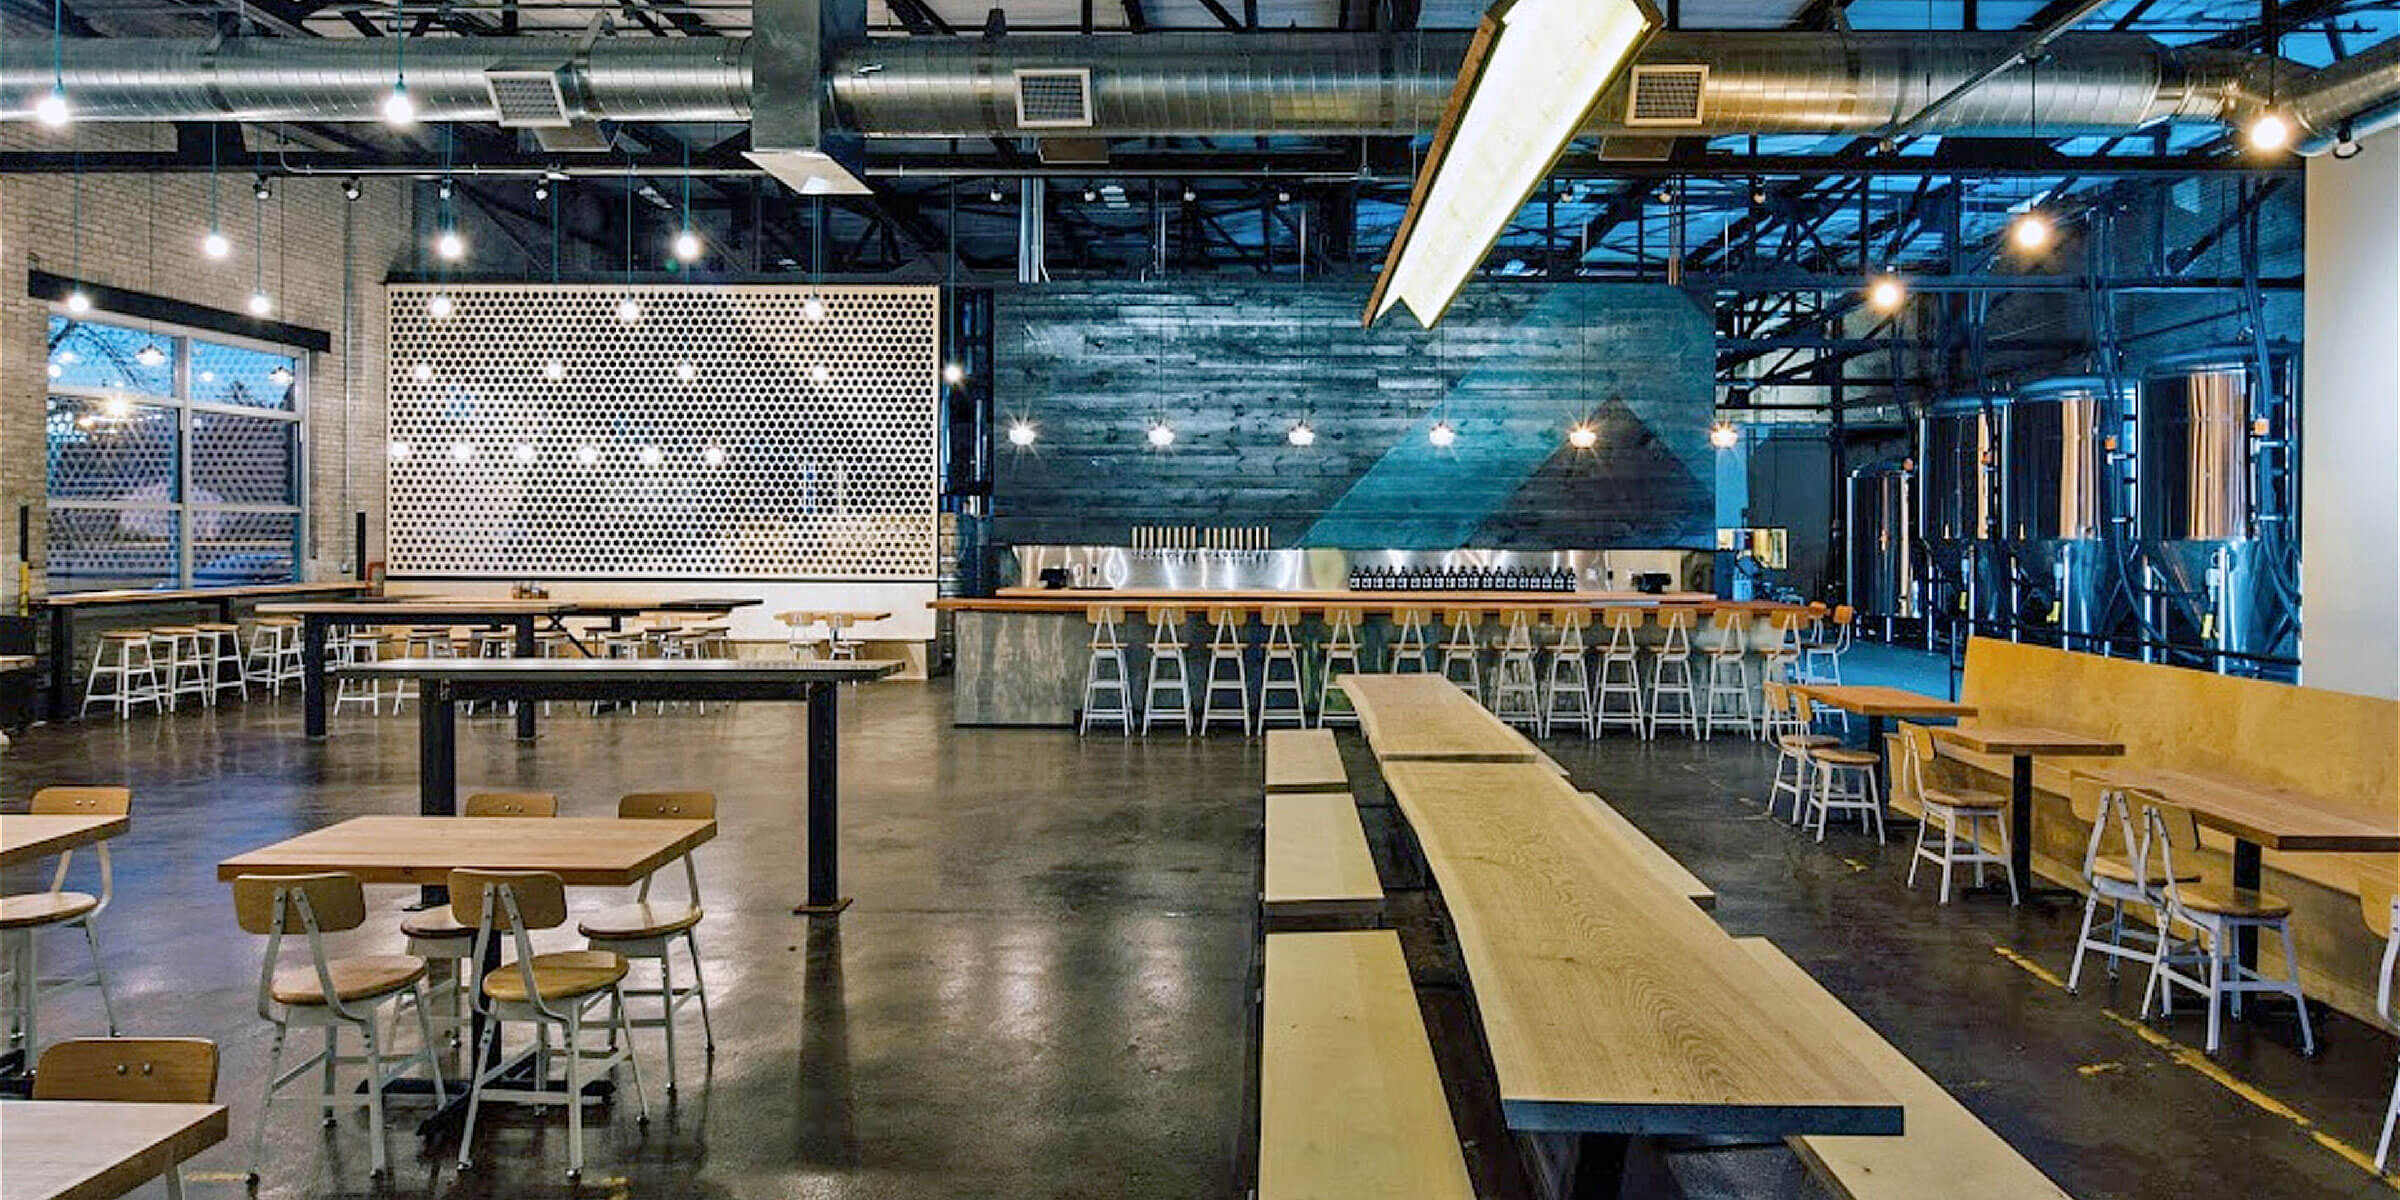 Inside the taproom at Able Seedhouse + Brewery in Minneapolis, Minnesota